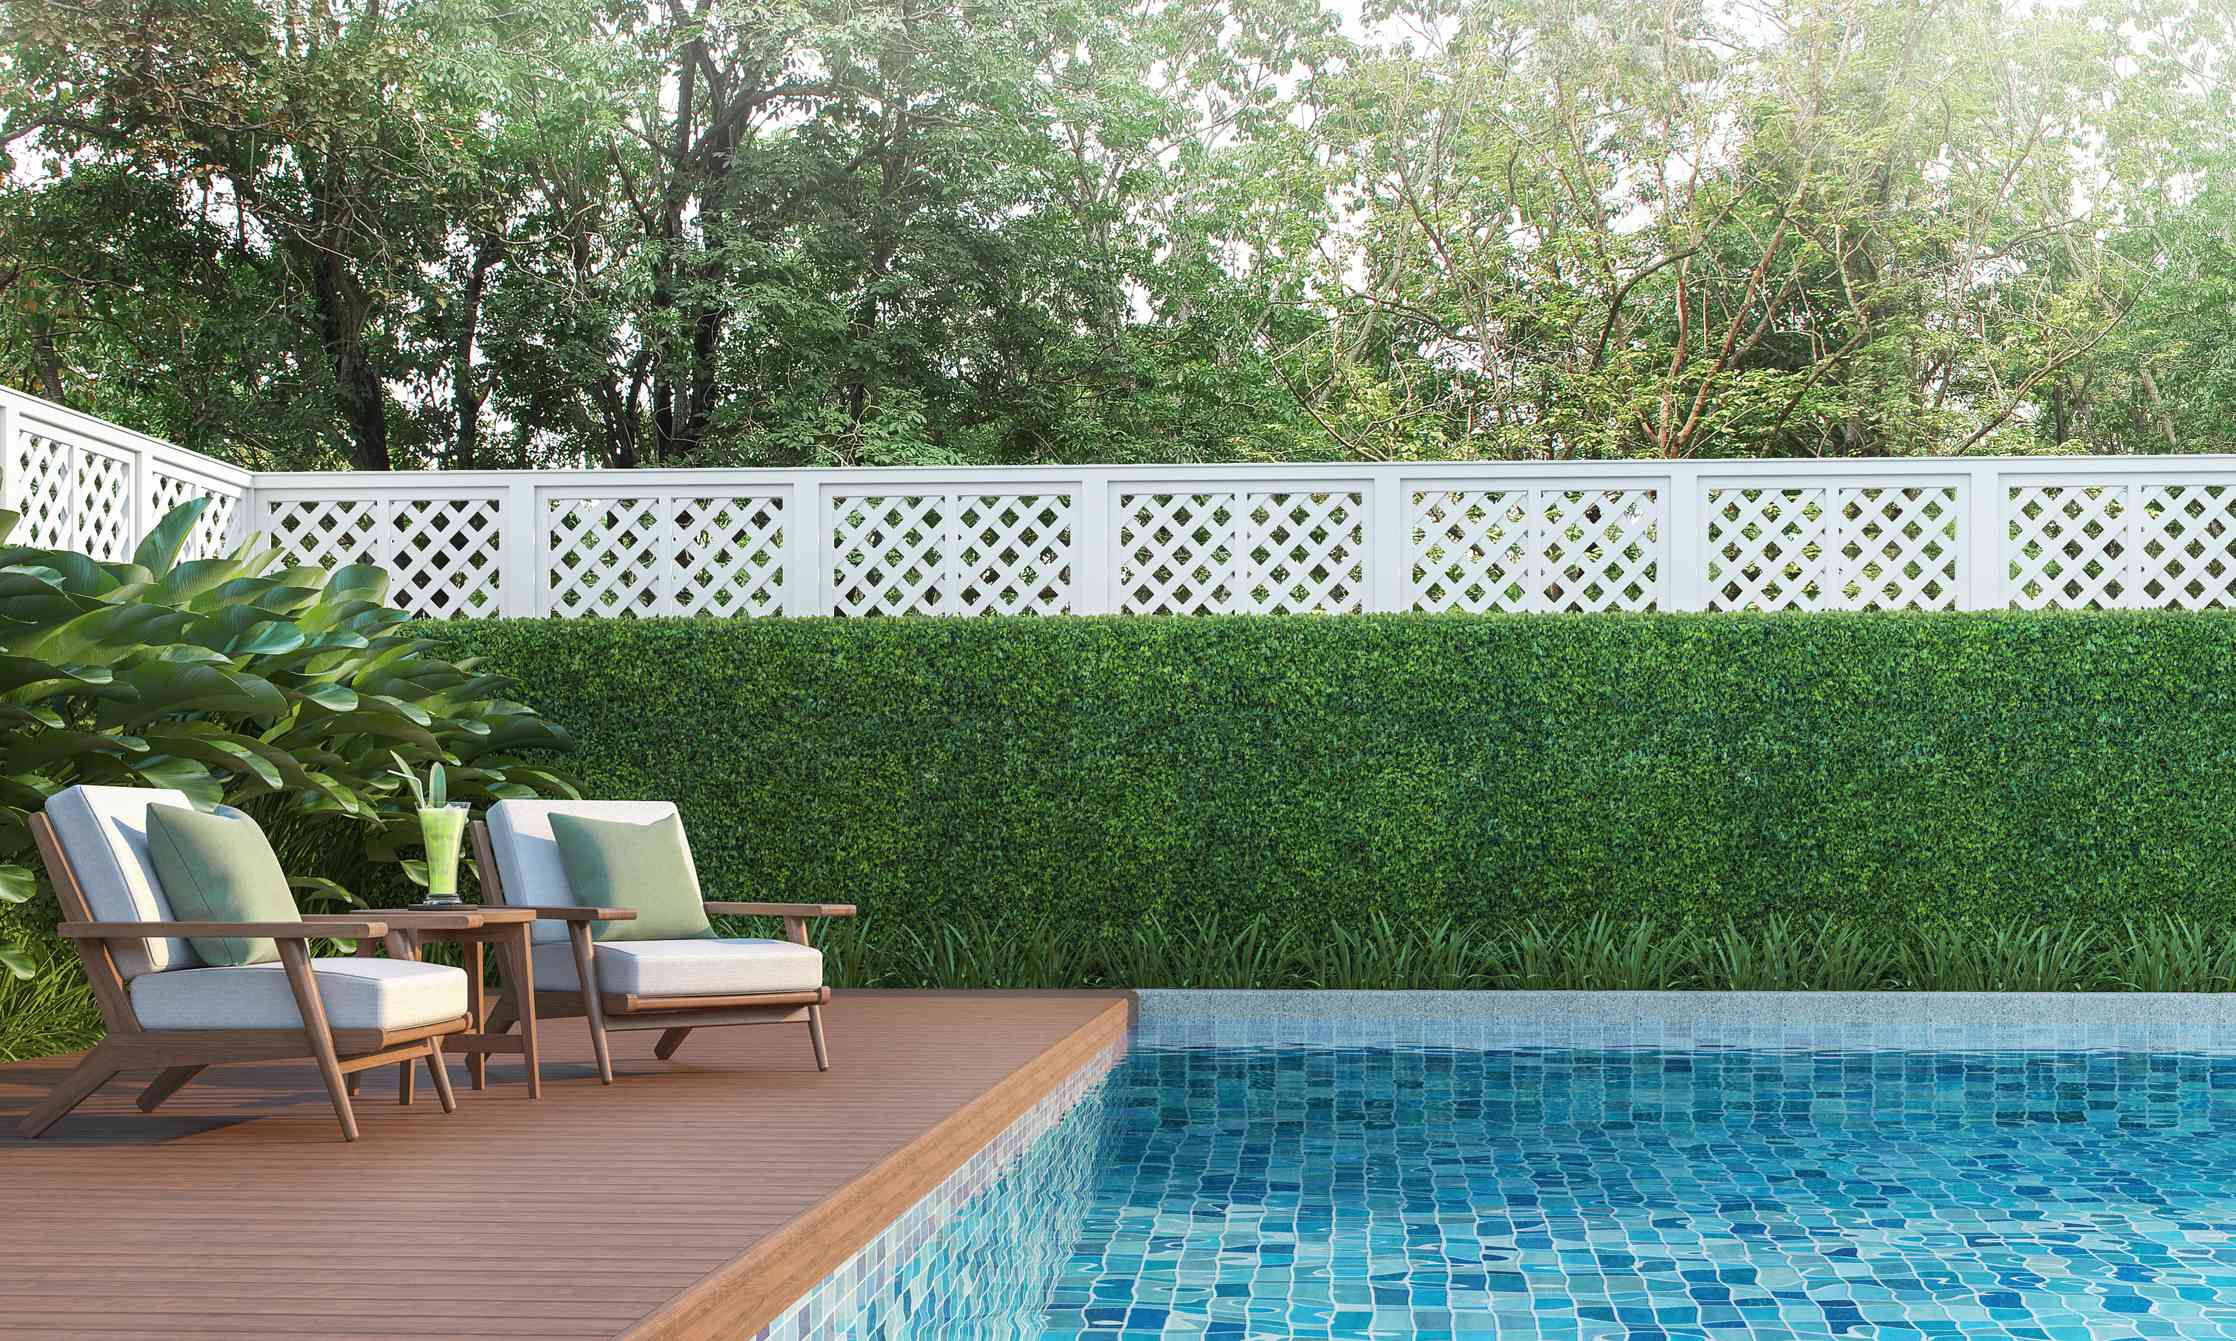 A backyard pool surrounded by shrubbery and a white lattice fence.